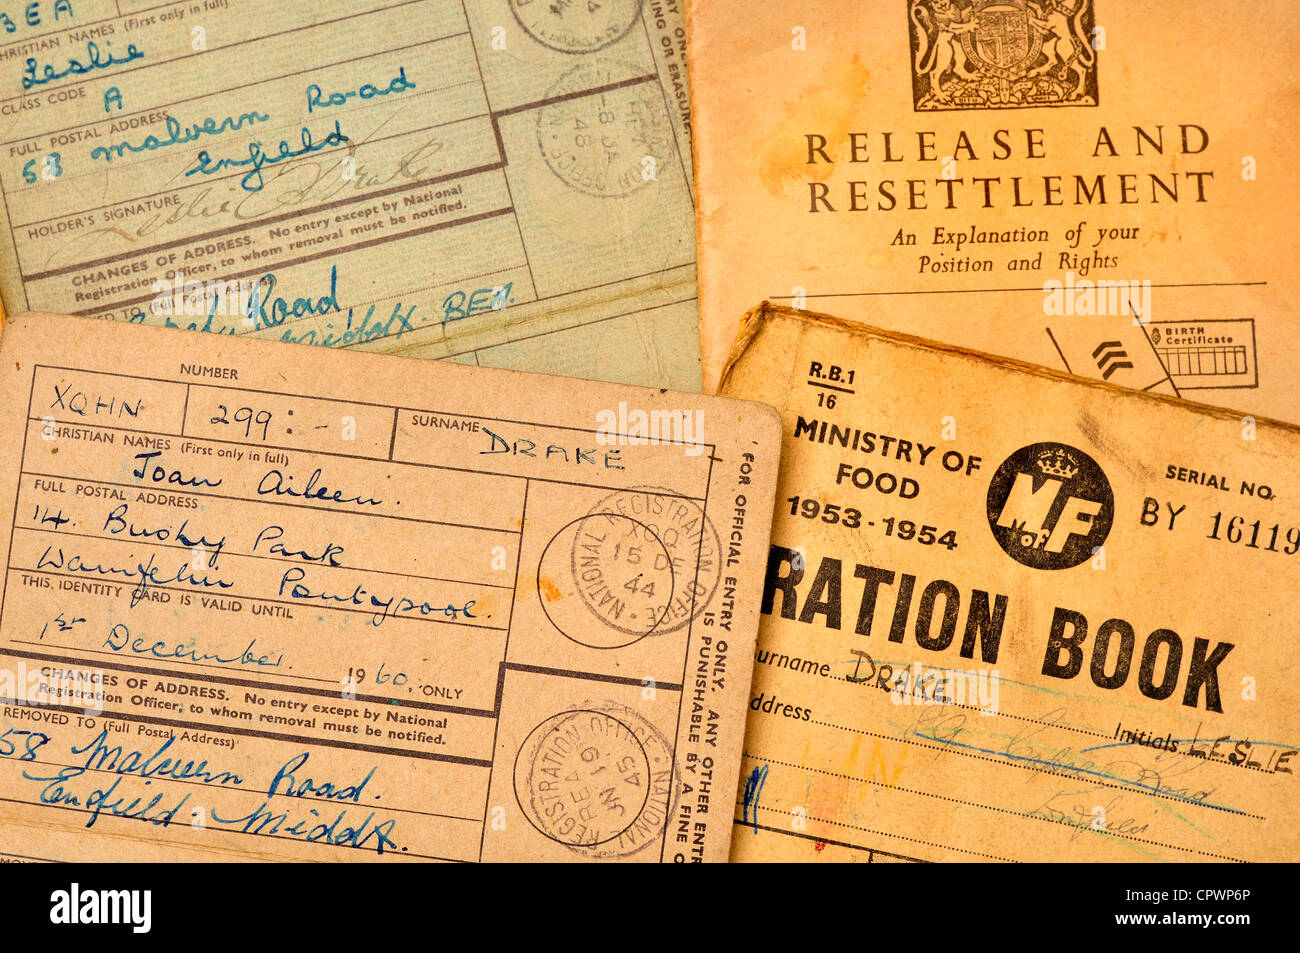 Post World War 2 ration book, identity cards and 'Release and Settlement' advice - Stock Image